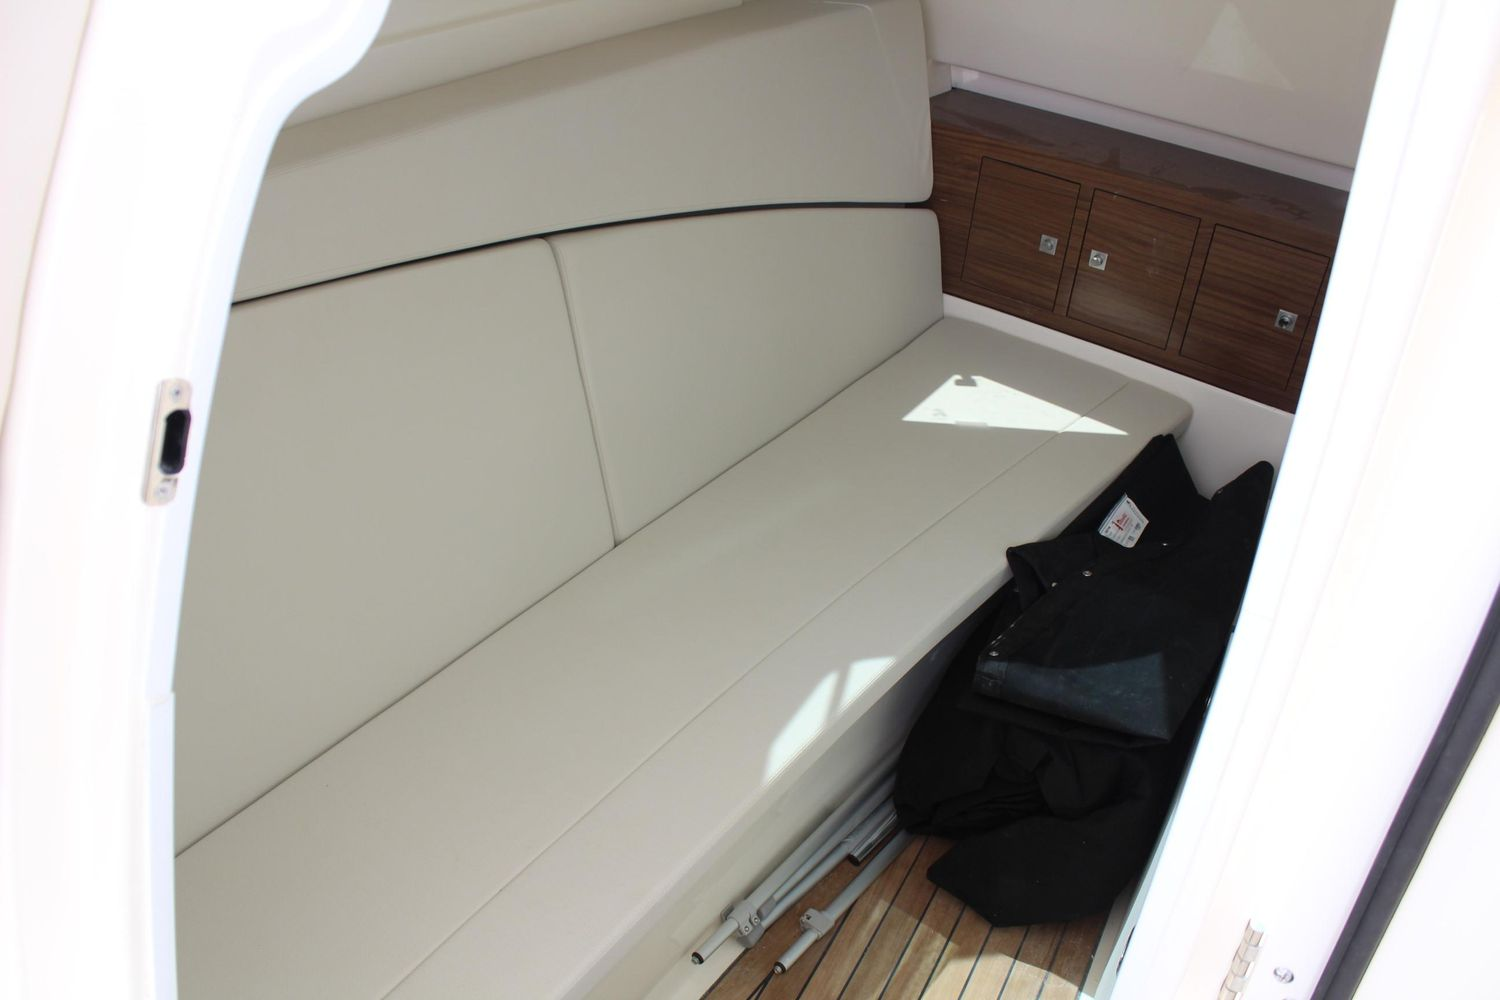 2021 Boston Whaler                                                              320 Vantage Image Thumbnail #15